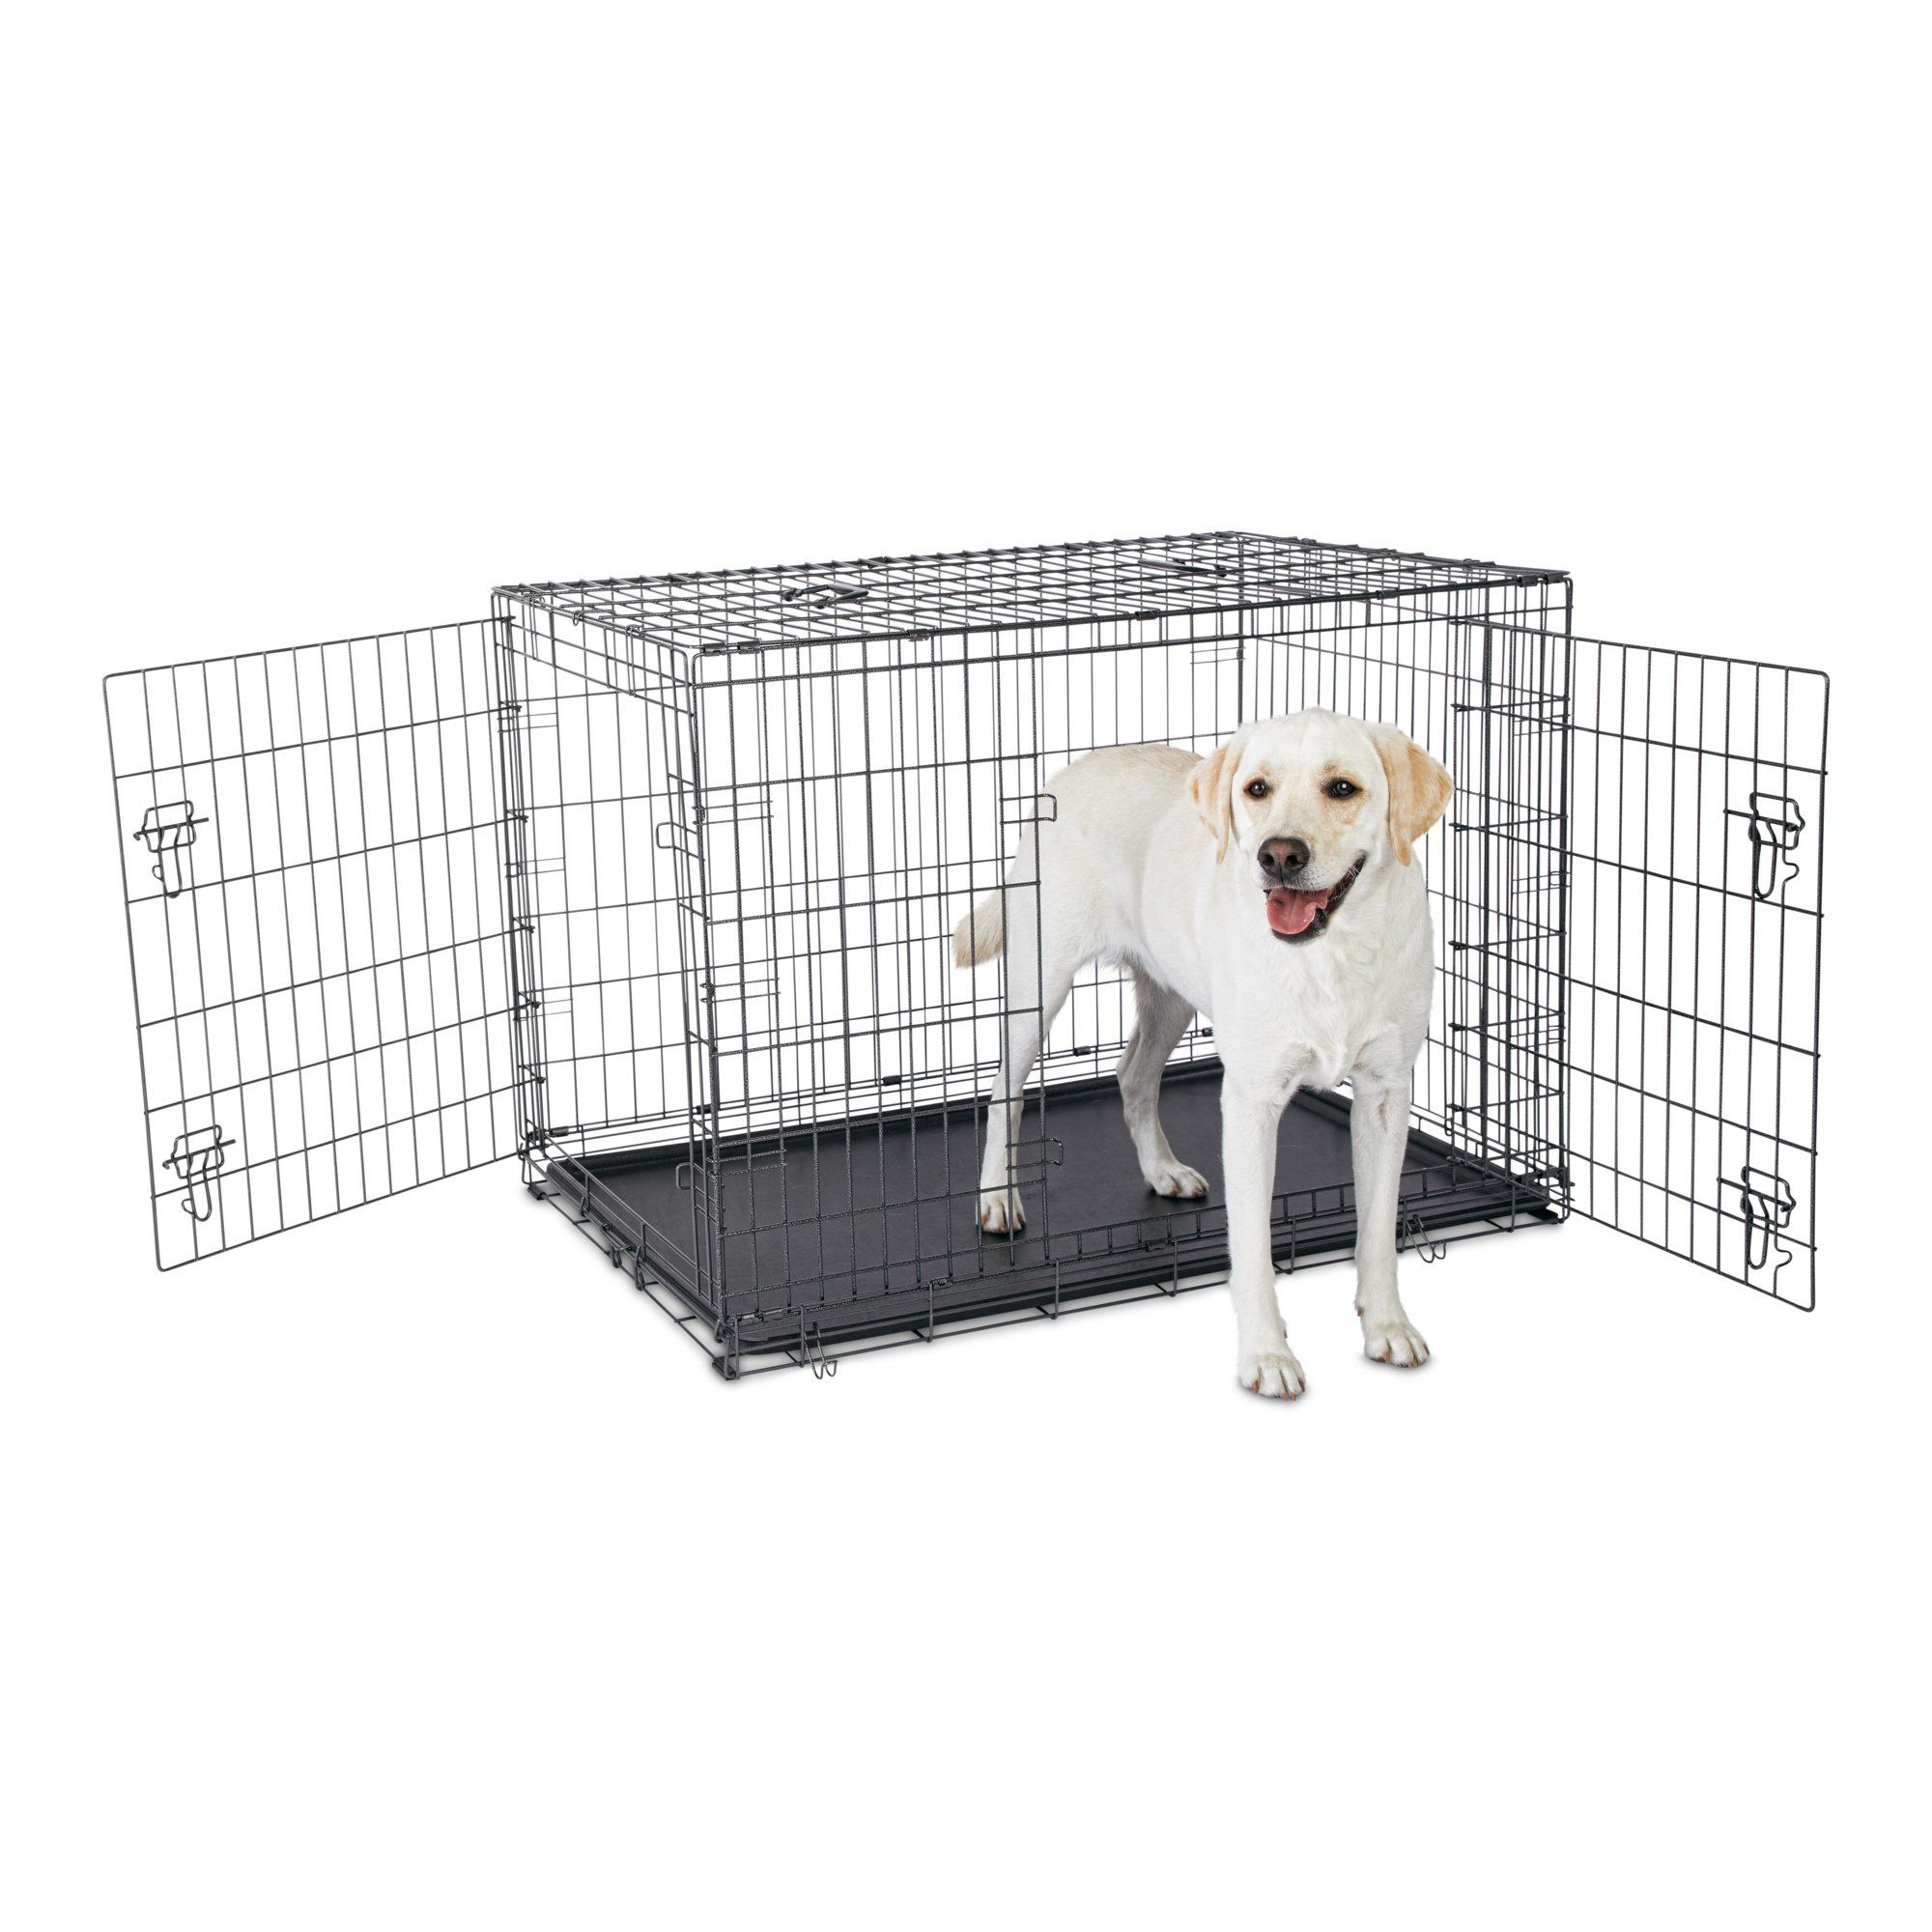 Premium 2 Door Dog Crate 42 L X 28 W X 30 H In 2019 Products